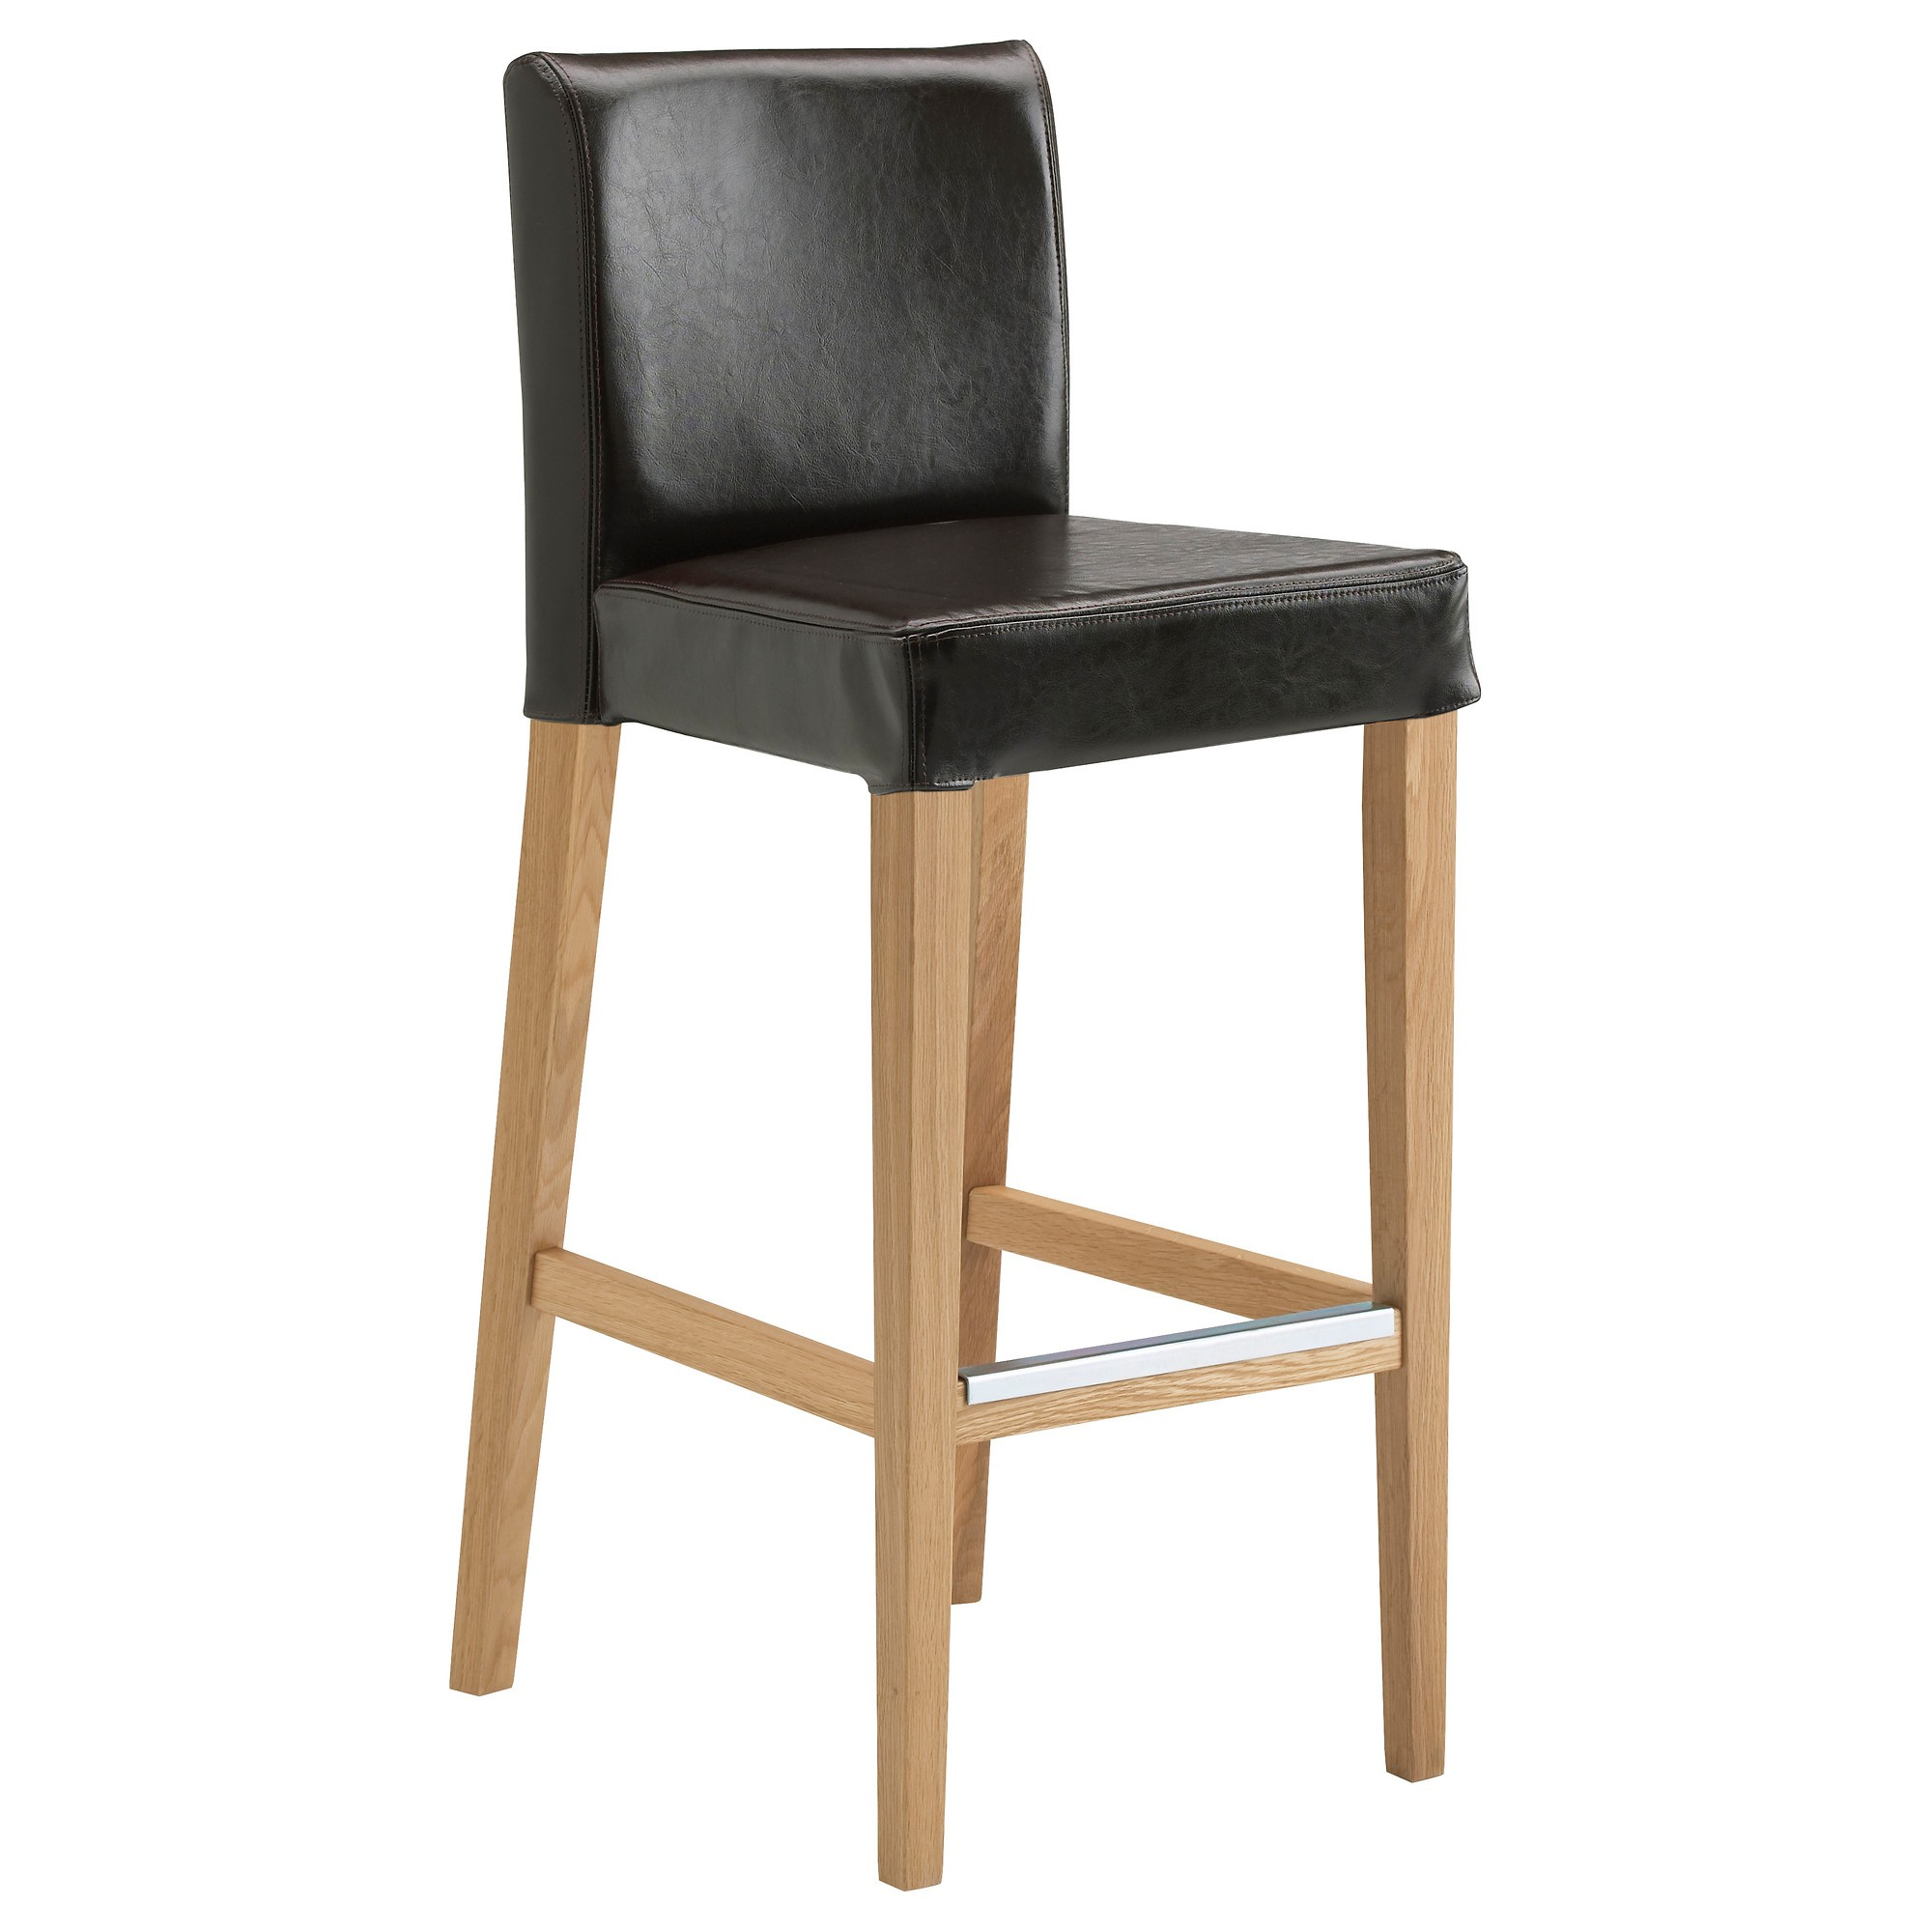 hauteur tabouret de bar ikea chaise id es de. Black Bedroom Furniture Sets. Home Design Ideas